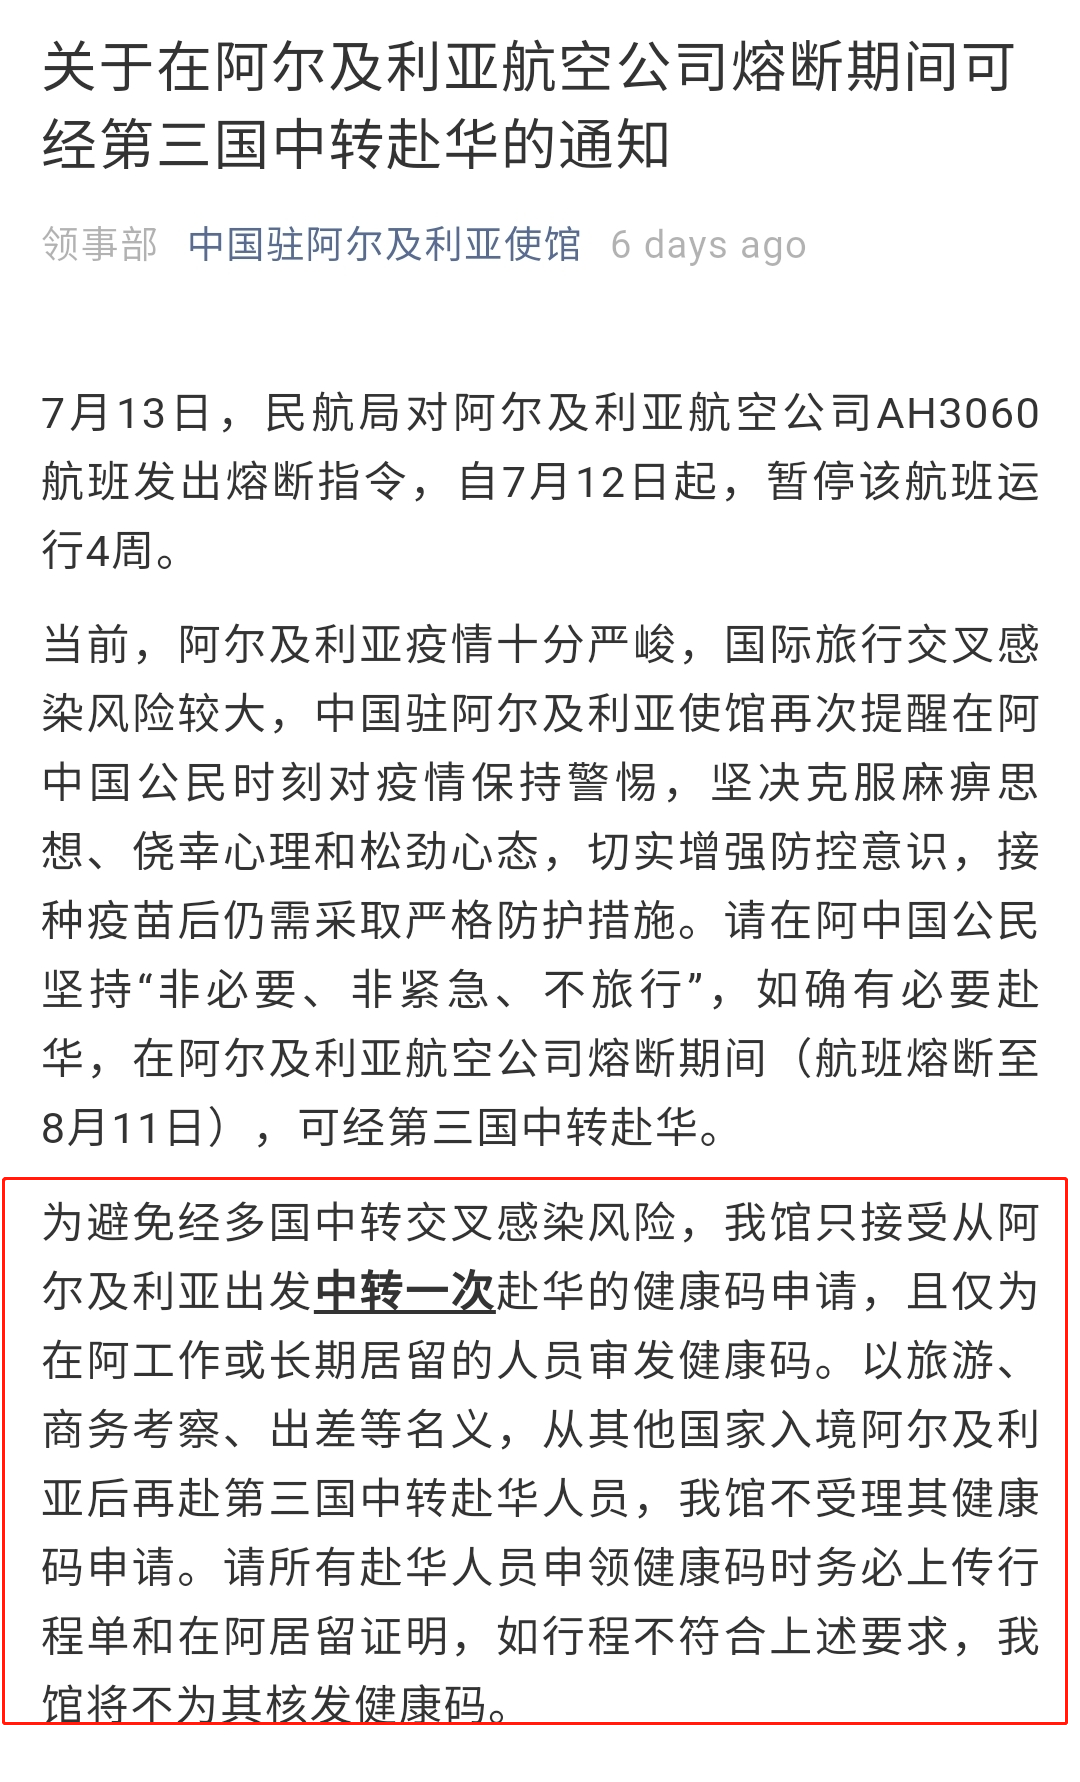 Updates on Health Code Application for China-bound Passengers!